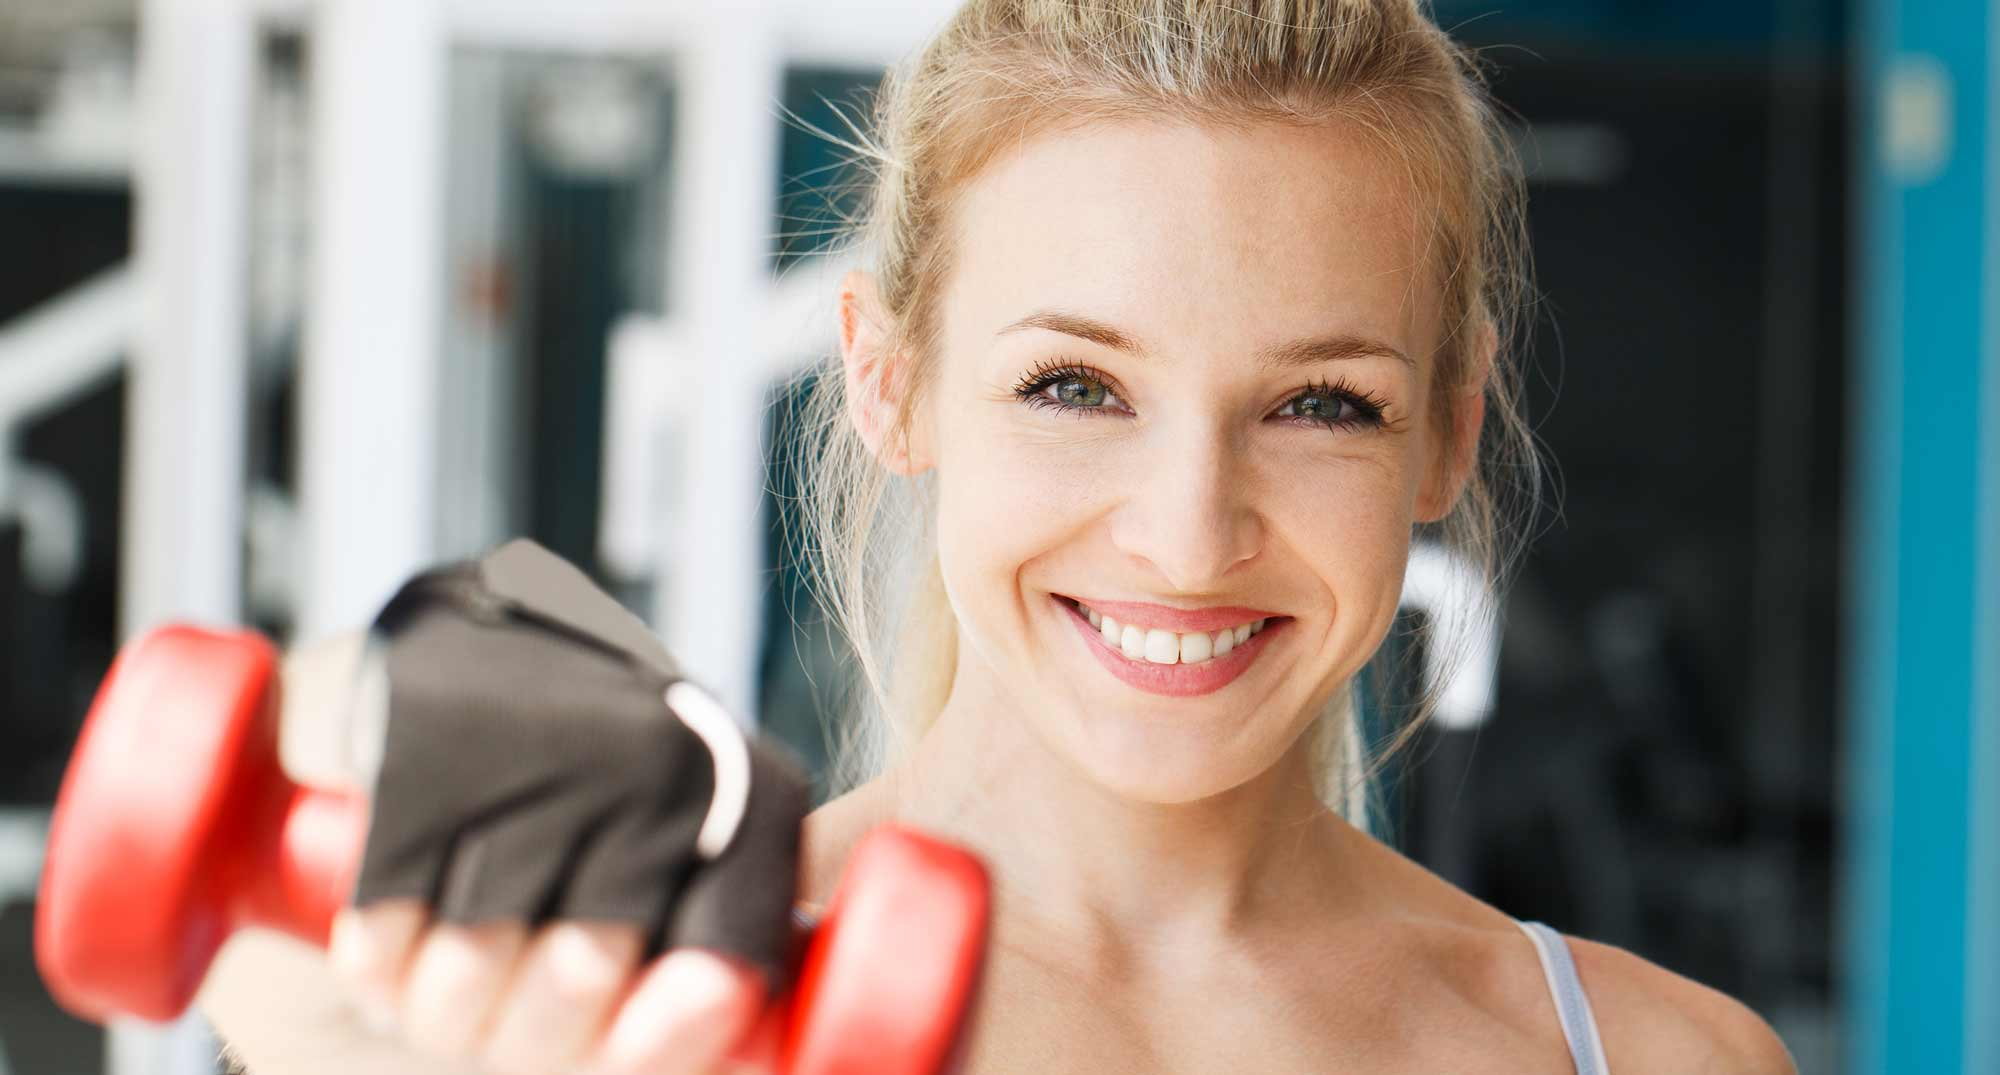 GREAT HEALTH: Preventative Health For Muscles